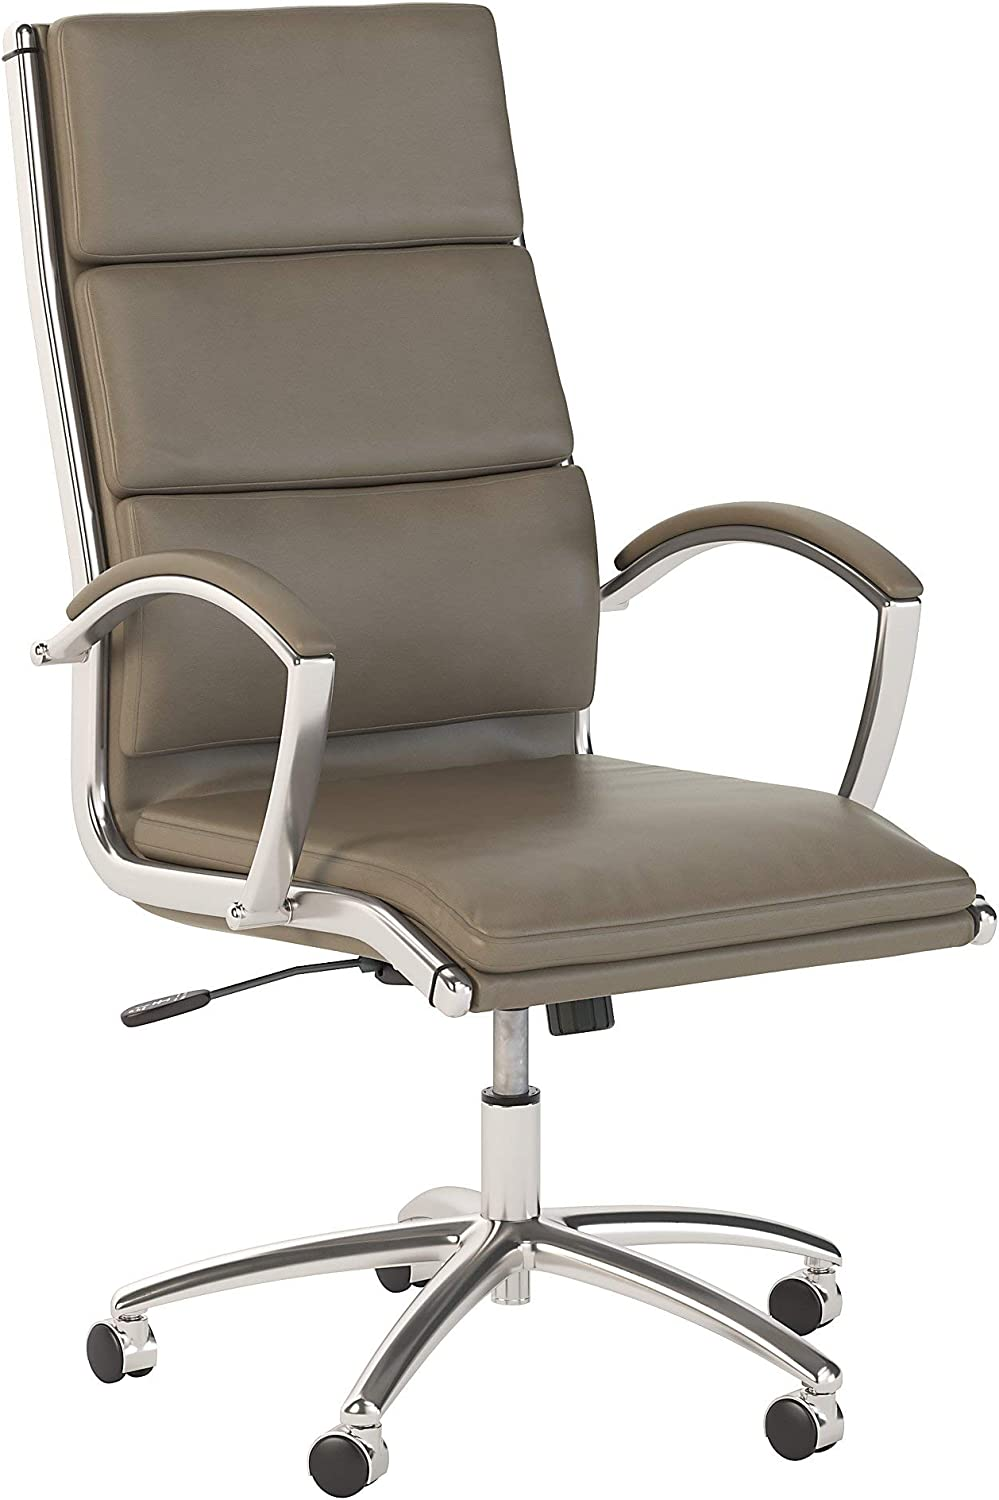 Bush Business Furniture Modelo High Back Leather Executive Office Chair in Washed Gray